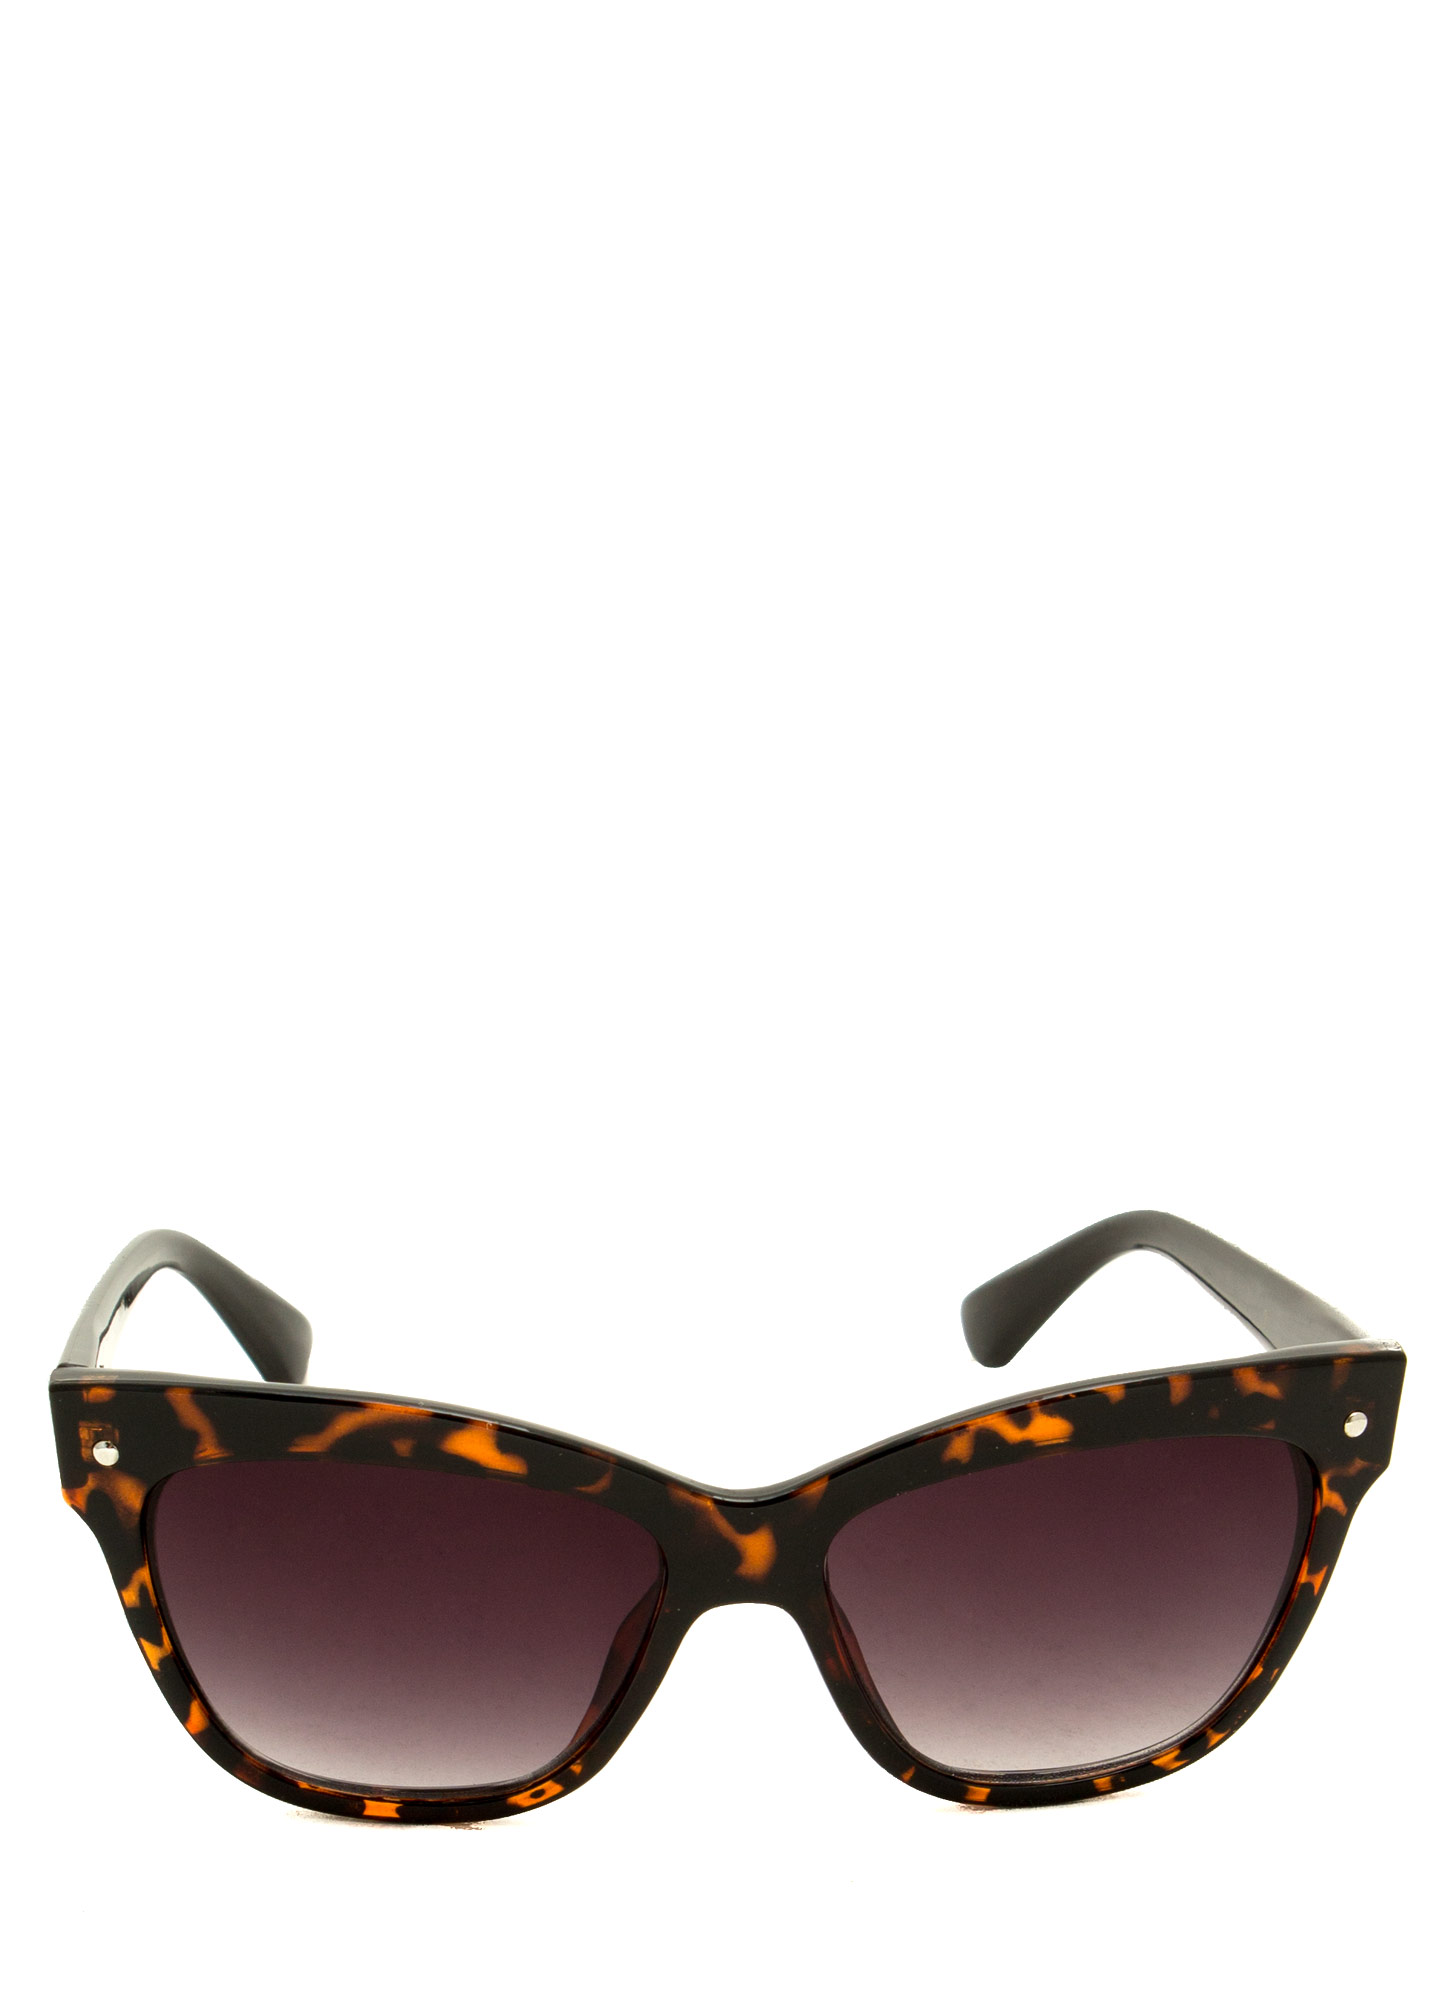 Modern Cat Eye Sunglasses DKTORTOISE